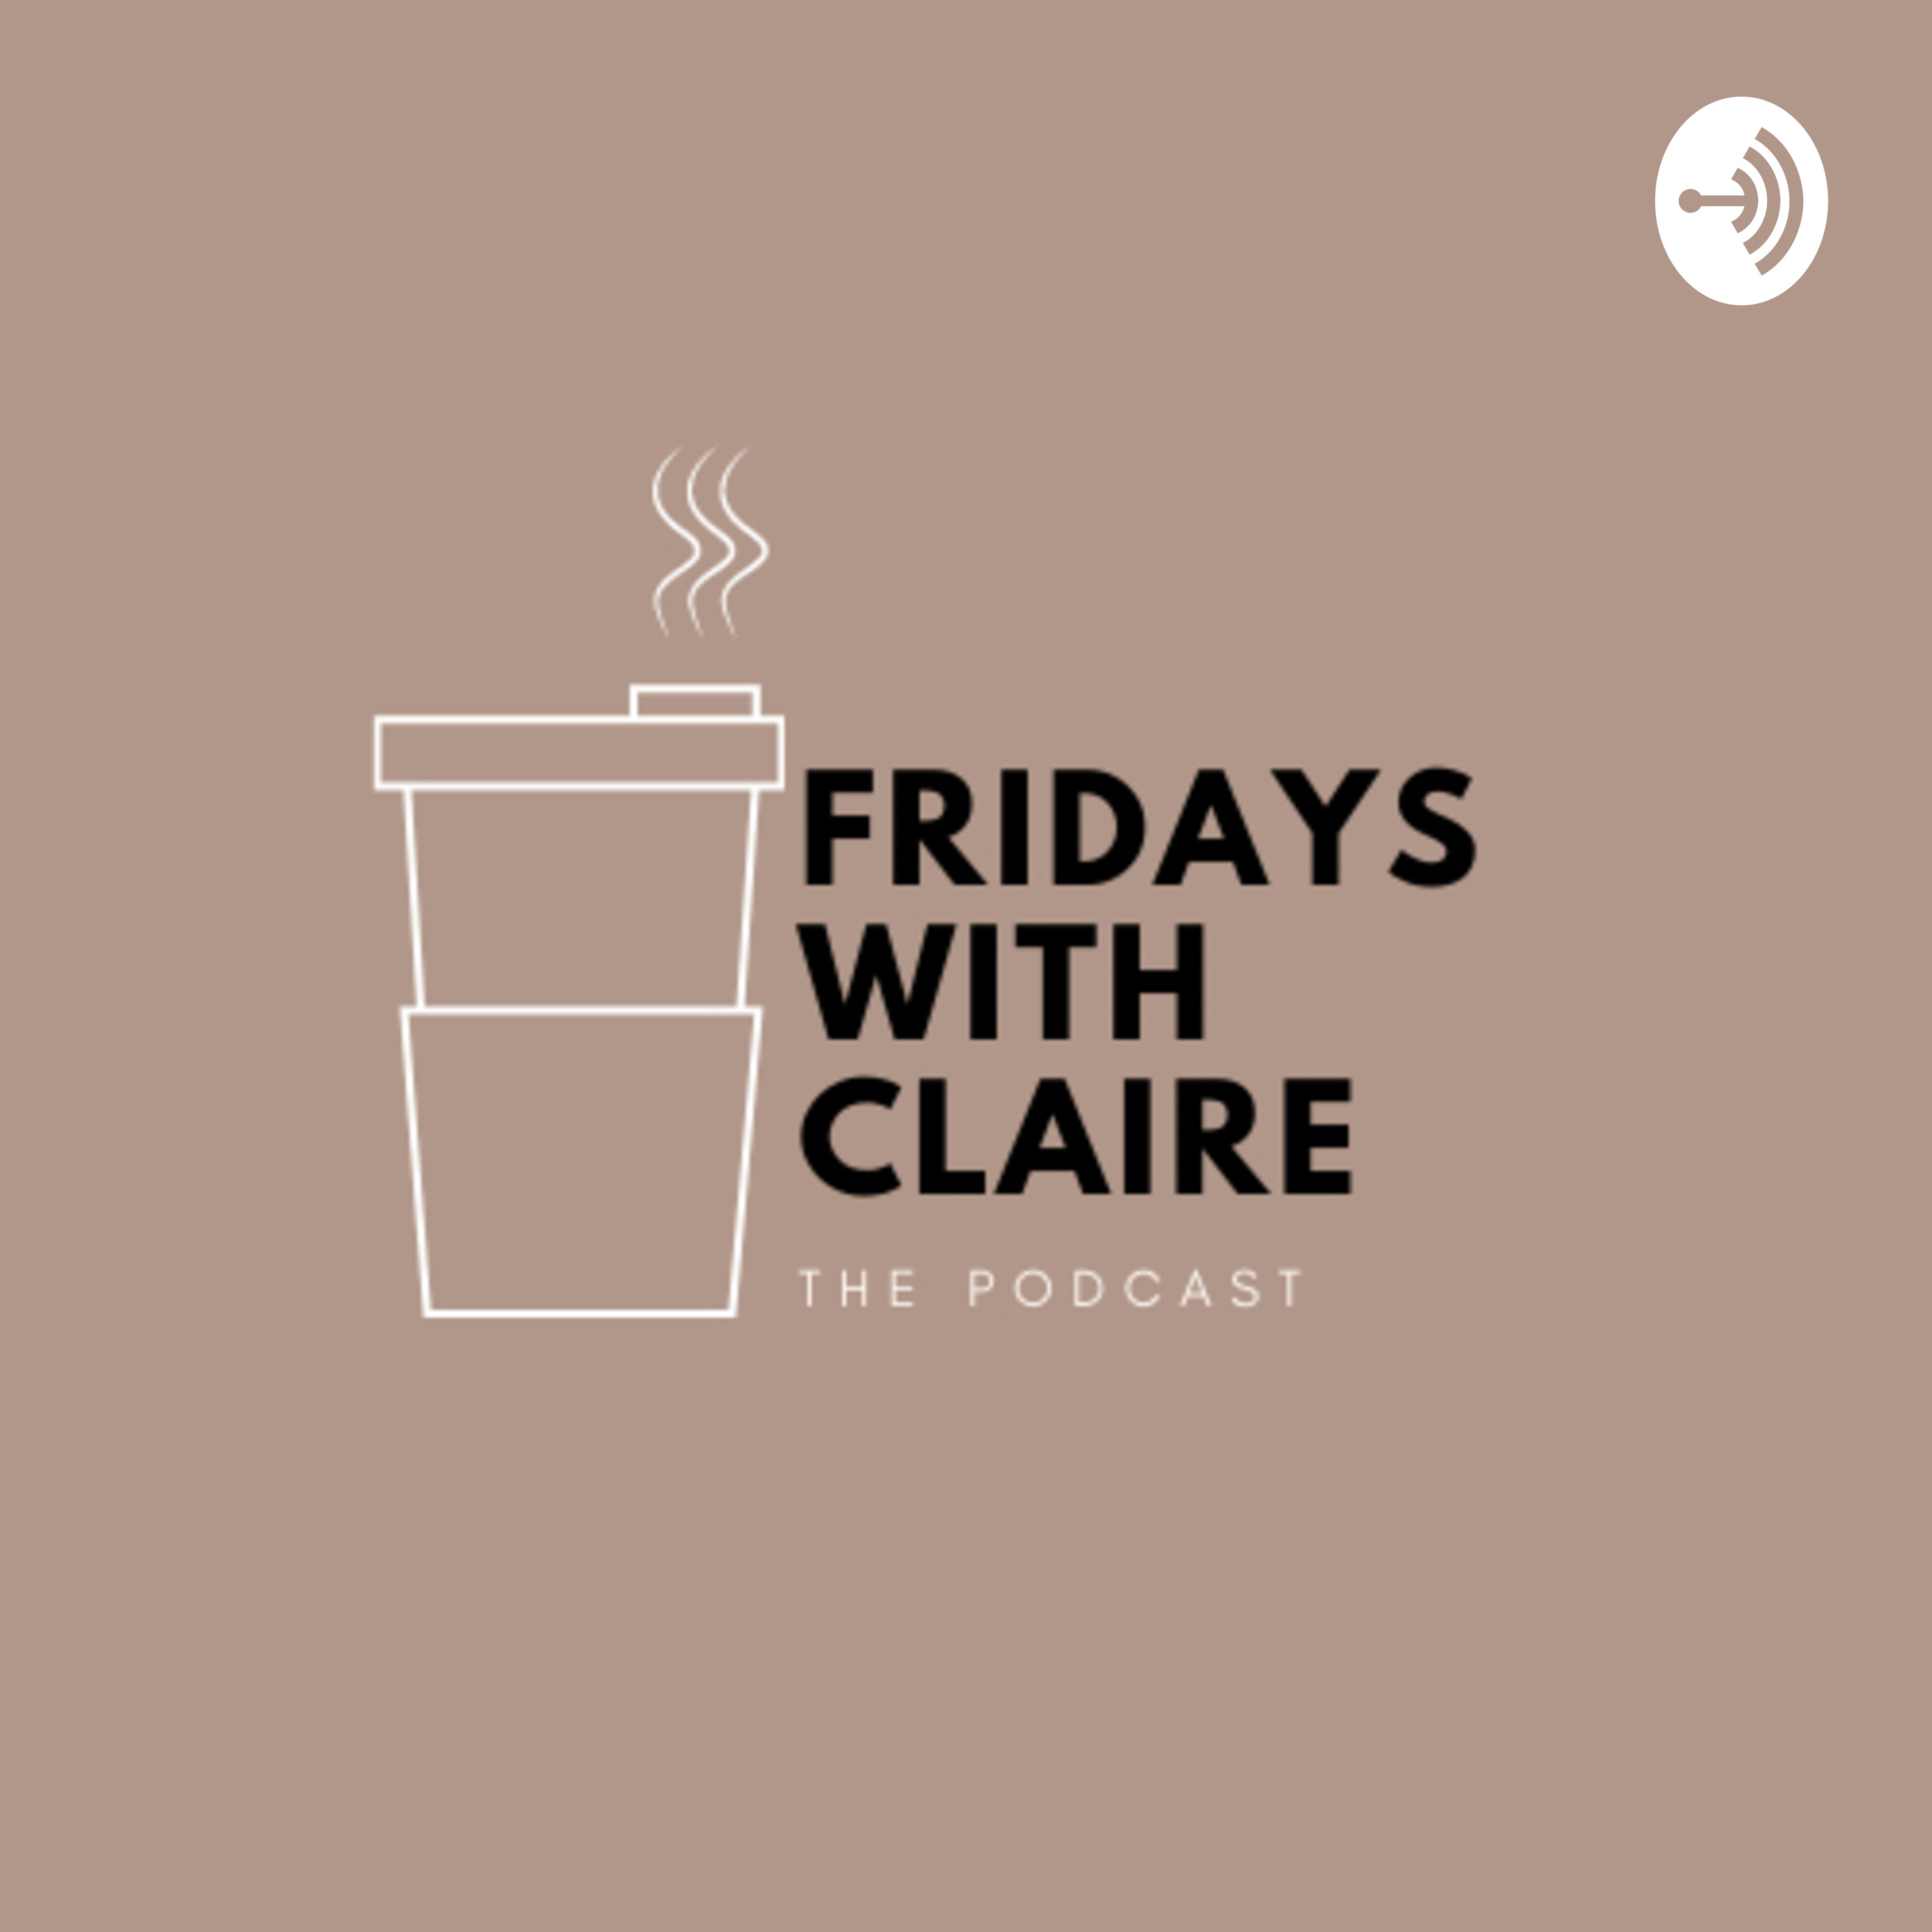 Fridays With Claire